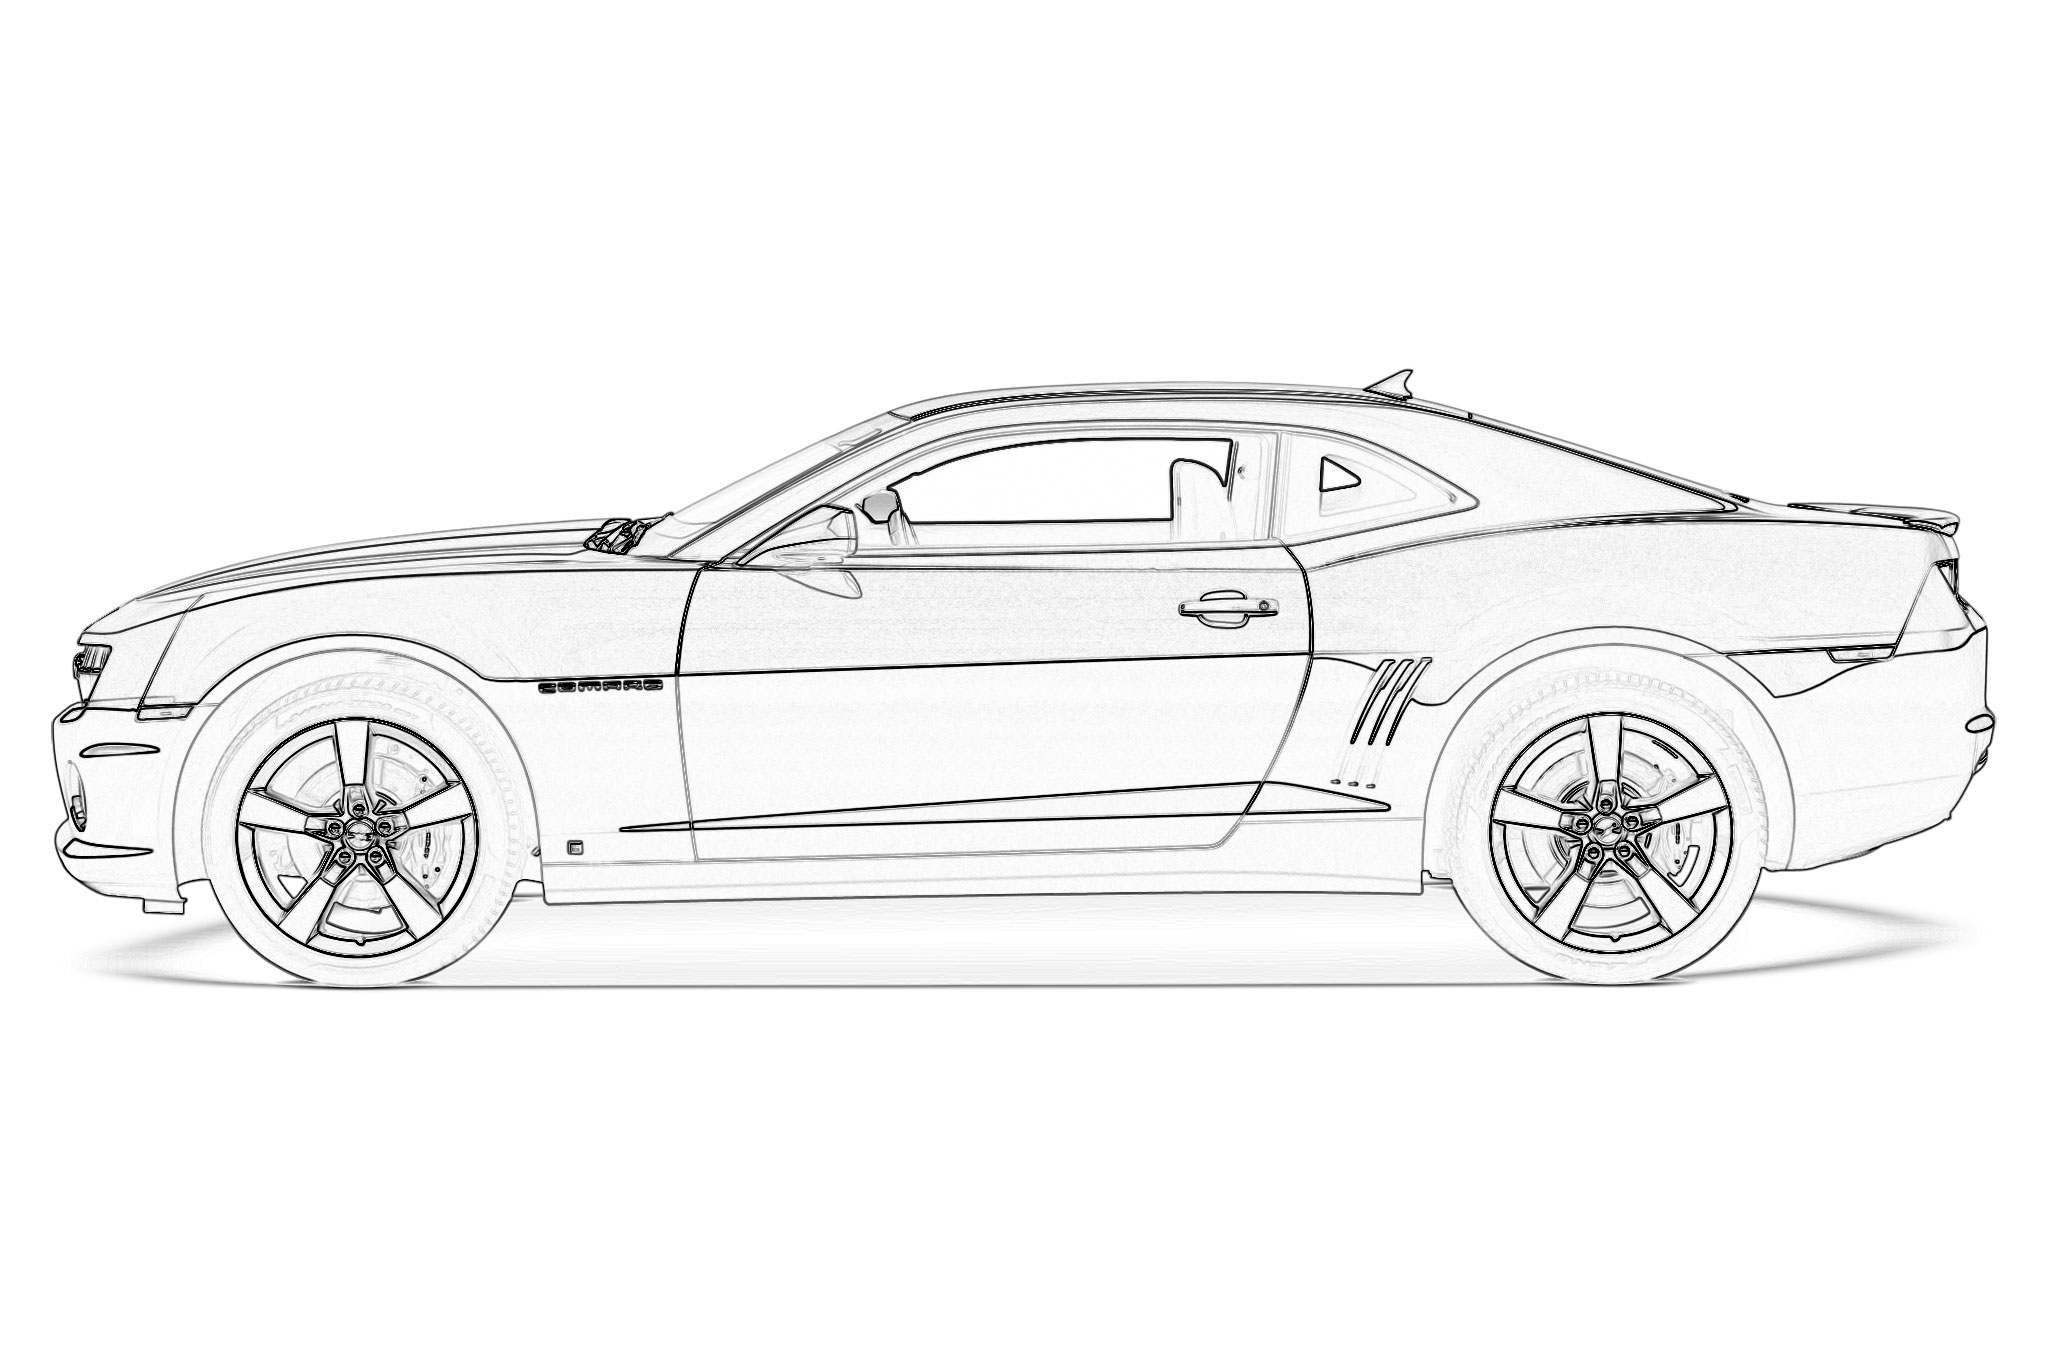 camaro coloring pages to print | 2010 Camaro Coloring Page - Coloring Home